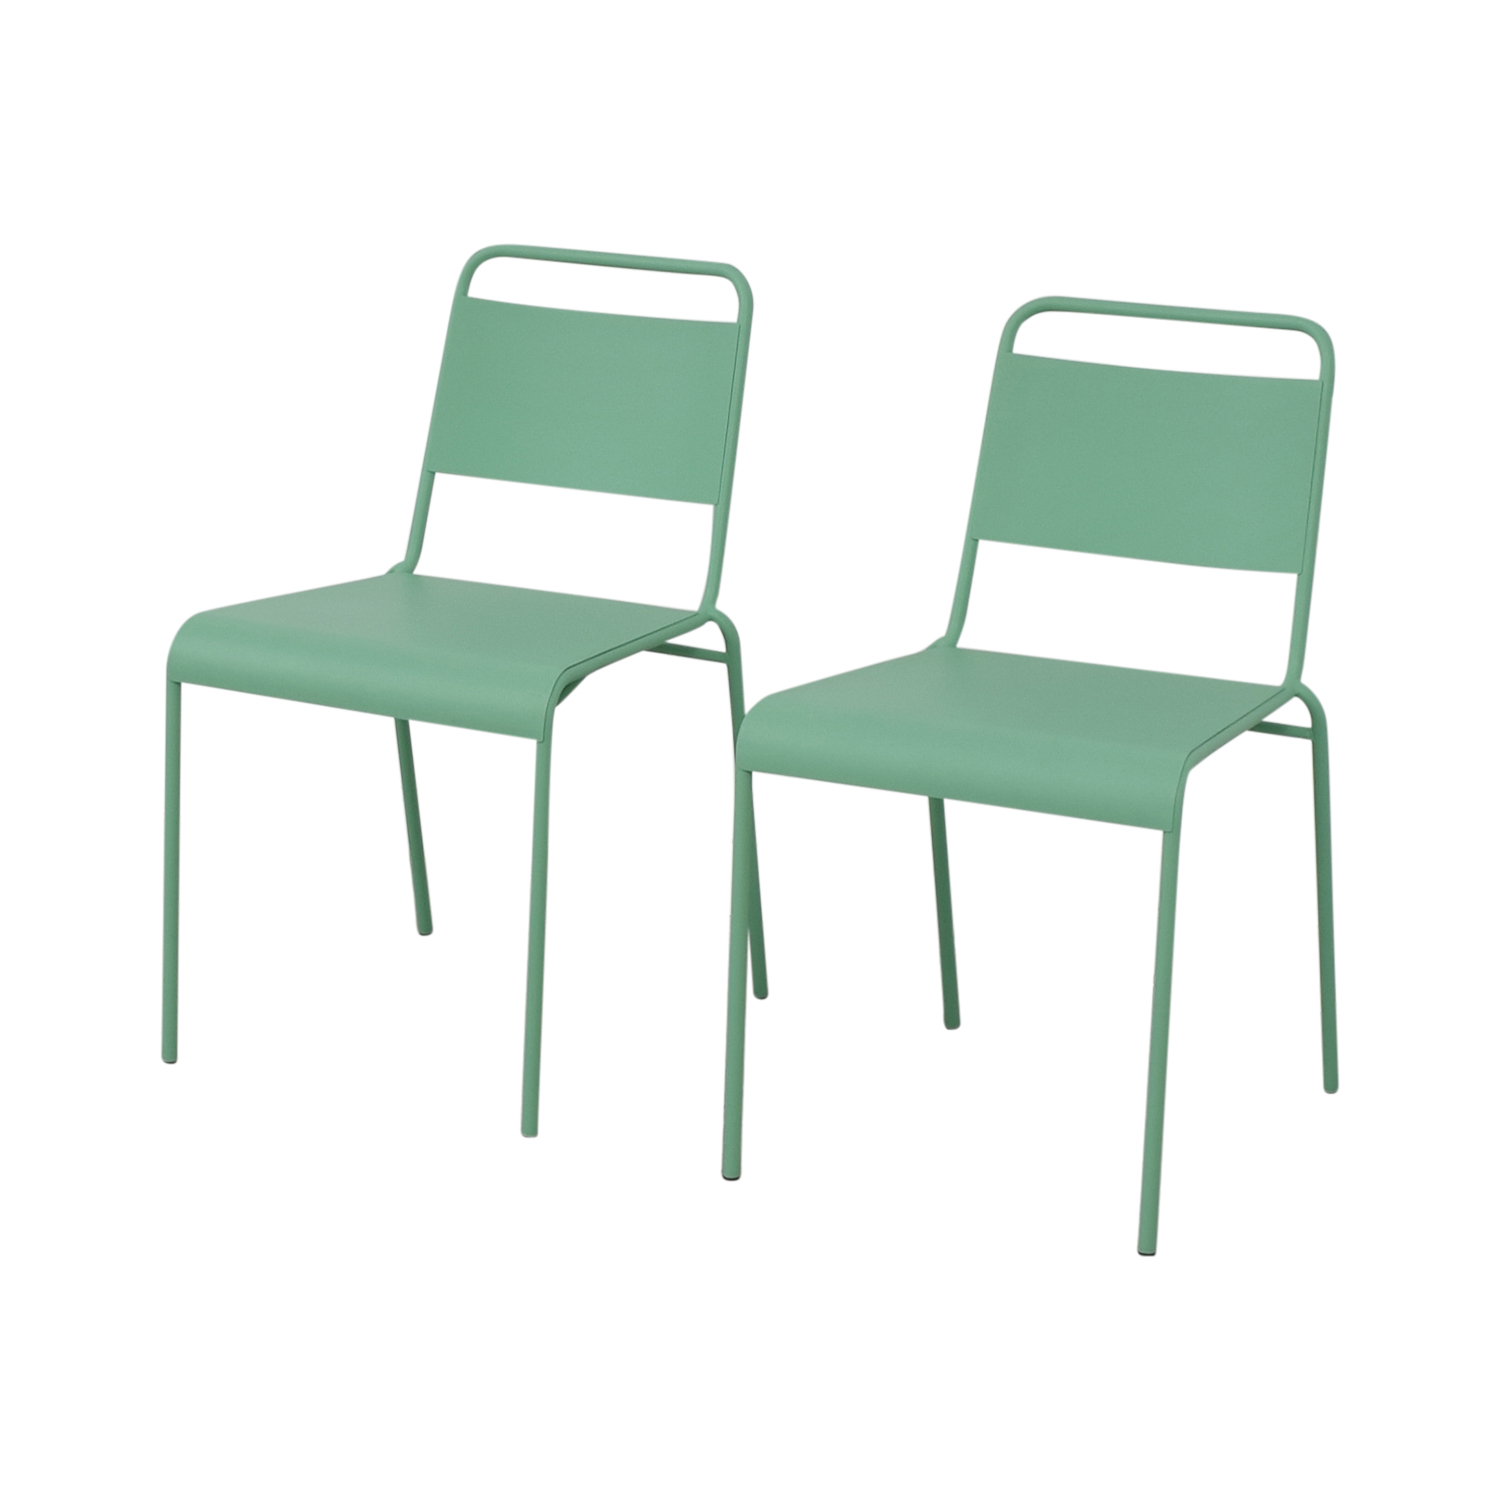 West Elm Lucinda Mint Green Dining Chairs / Chairs